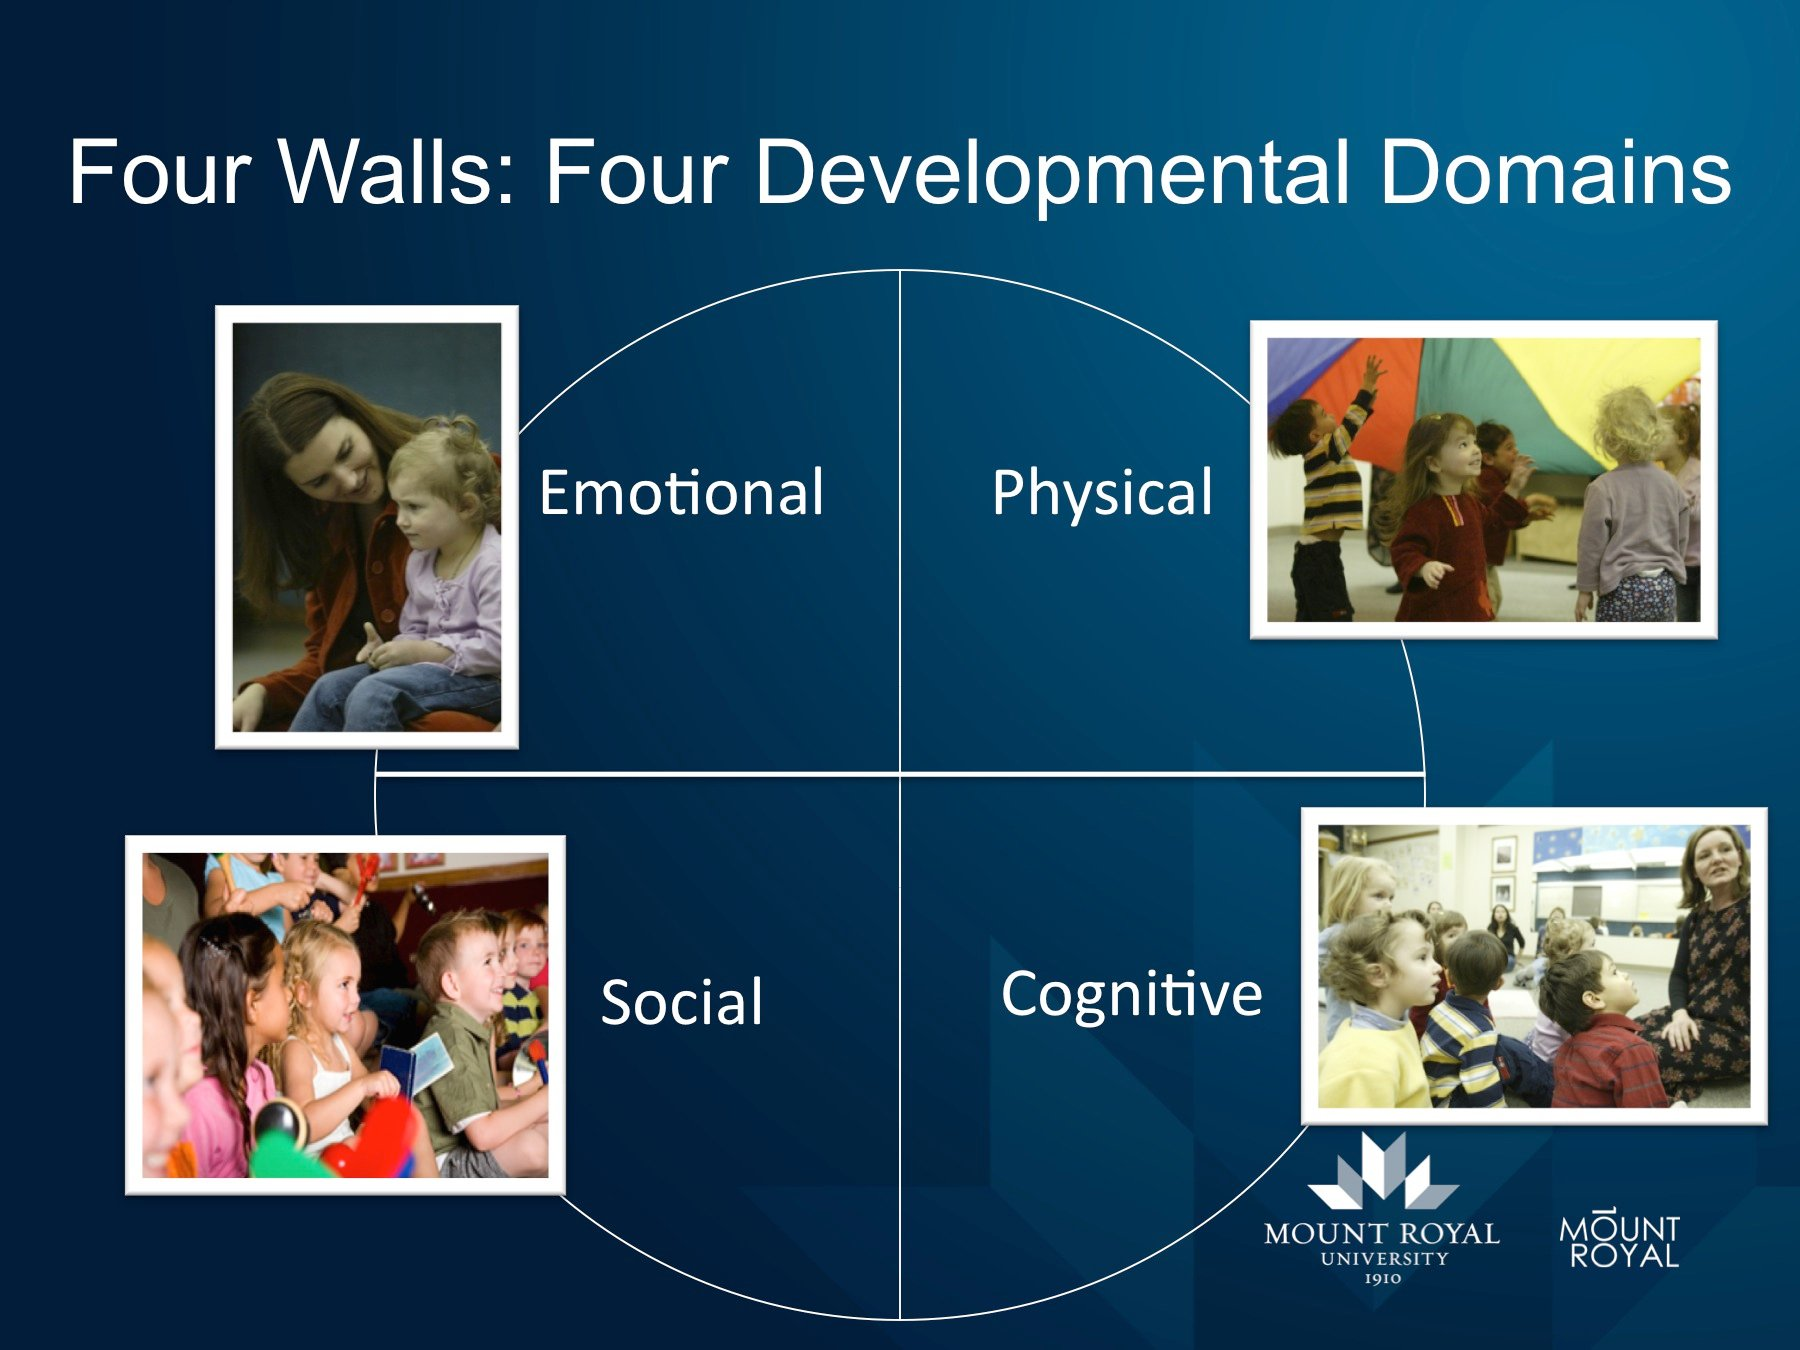 The social and emotional development of our youngest generation